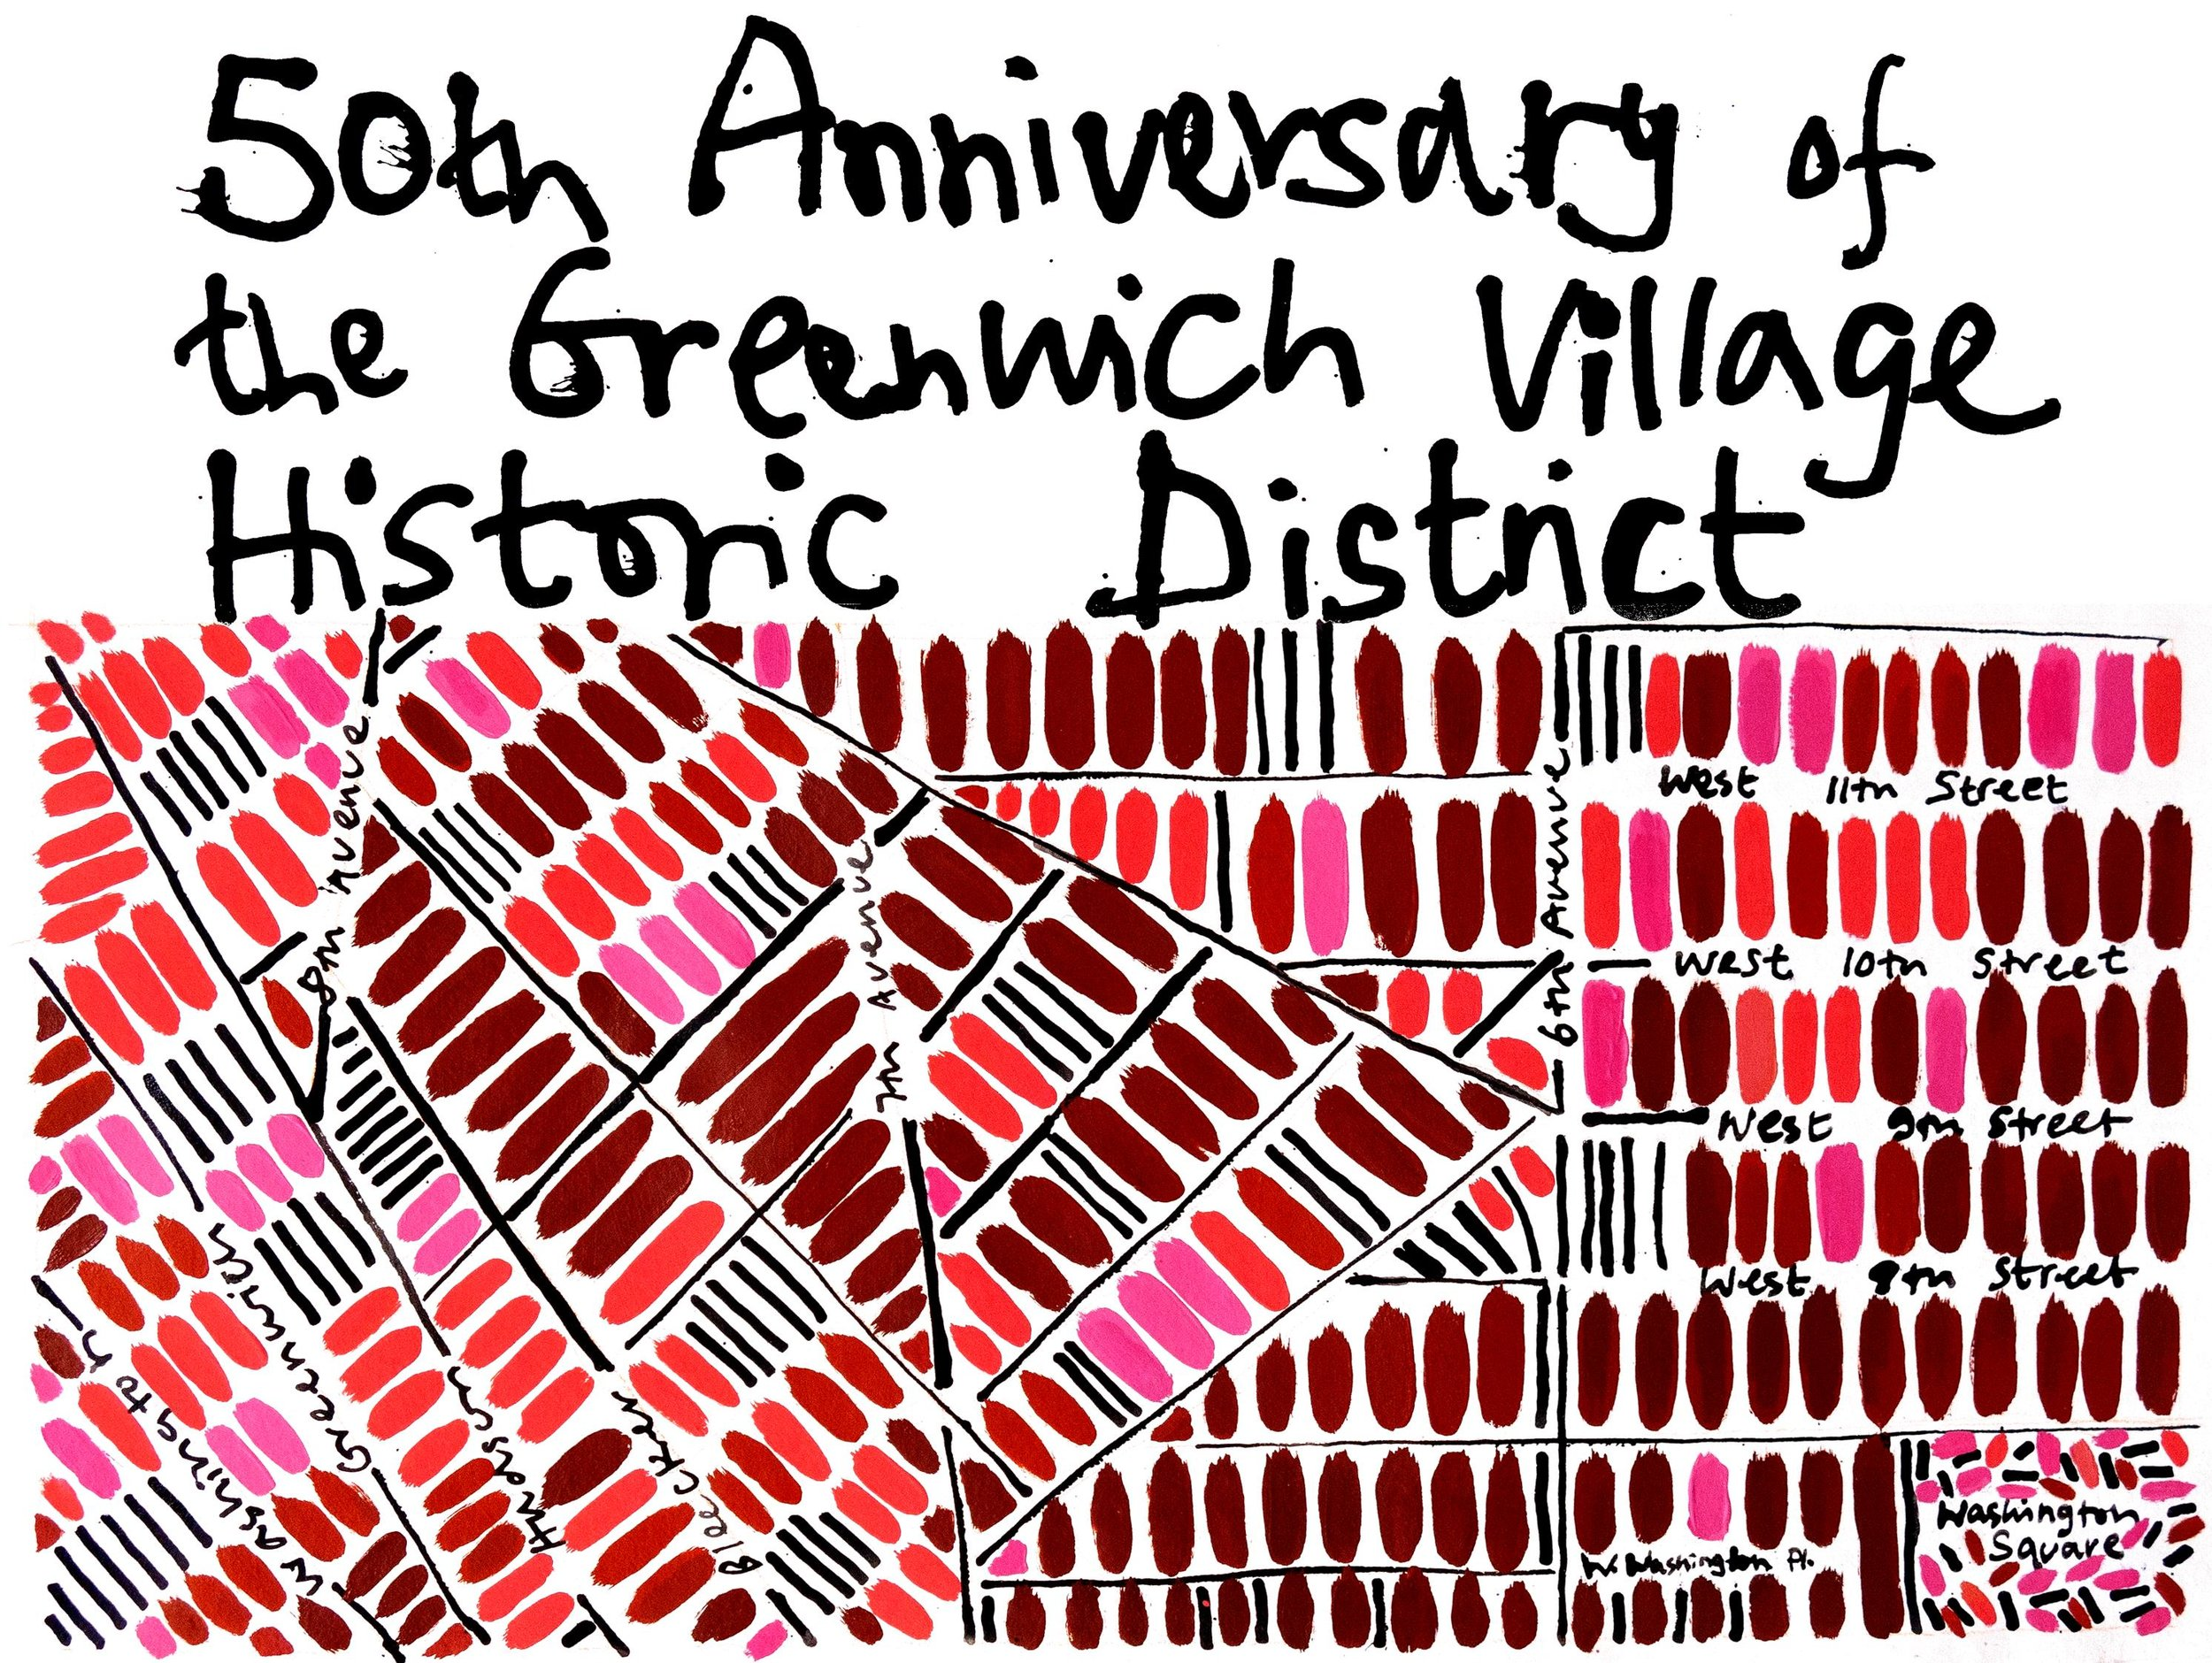 - The Work Behind the District's Designation1969 saw the designation of the Greenwich Village Historic District. Travel back in time with our panelists to explore preservation battles and changes in Greenwich Village and beyond before the designation of the district. This will be an in-depth look at the climate and work that set the stage for the Greenwich Village Historic District. With Andrew Berman, Anthony Wood, and Professor Francis Morrone.Free but registration is essential.For registration click here.